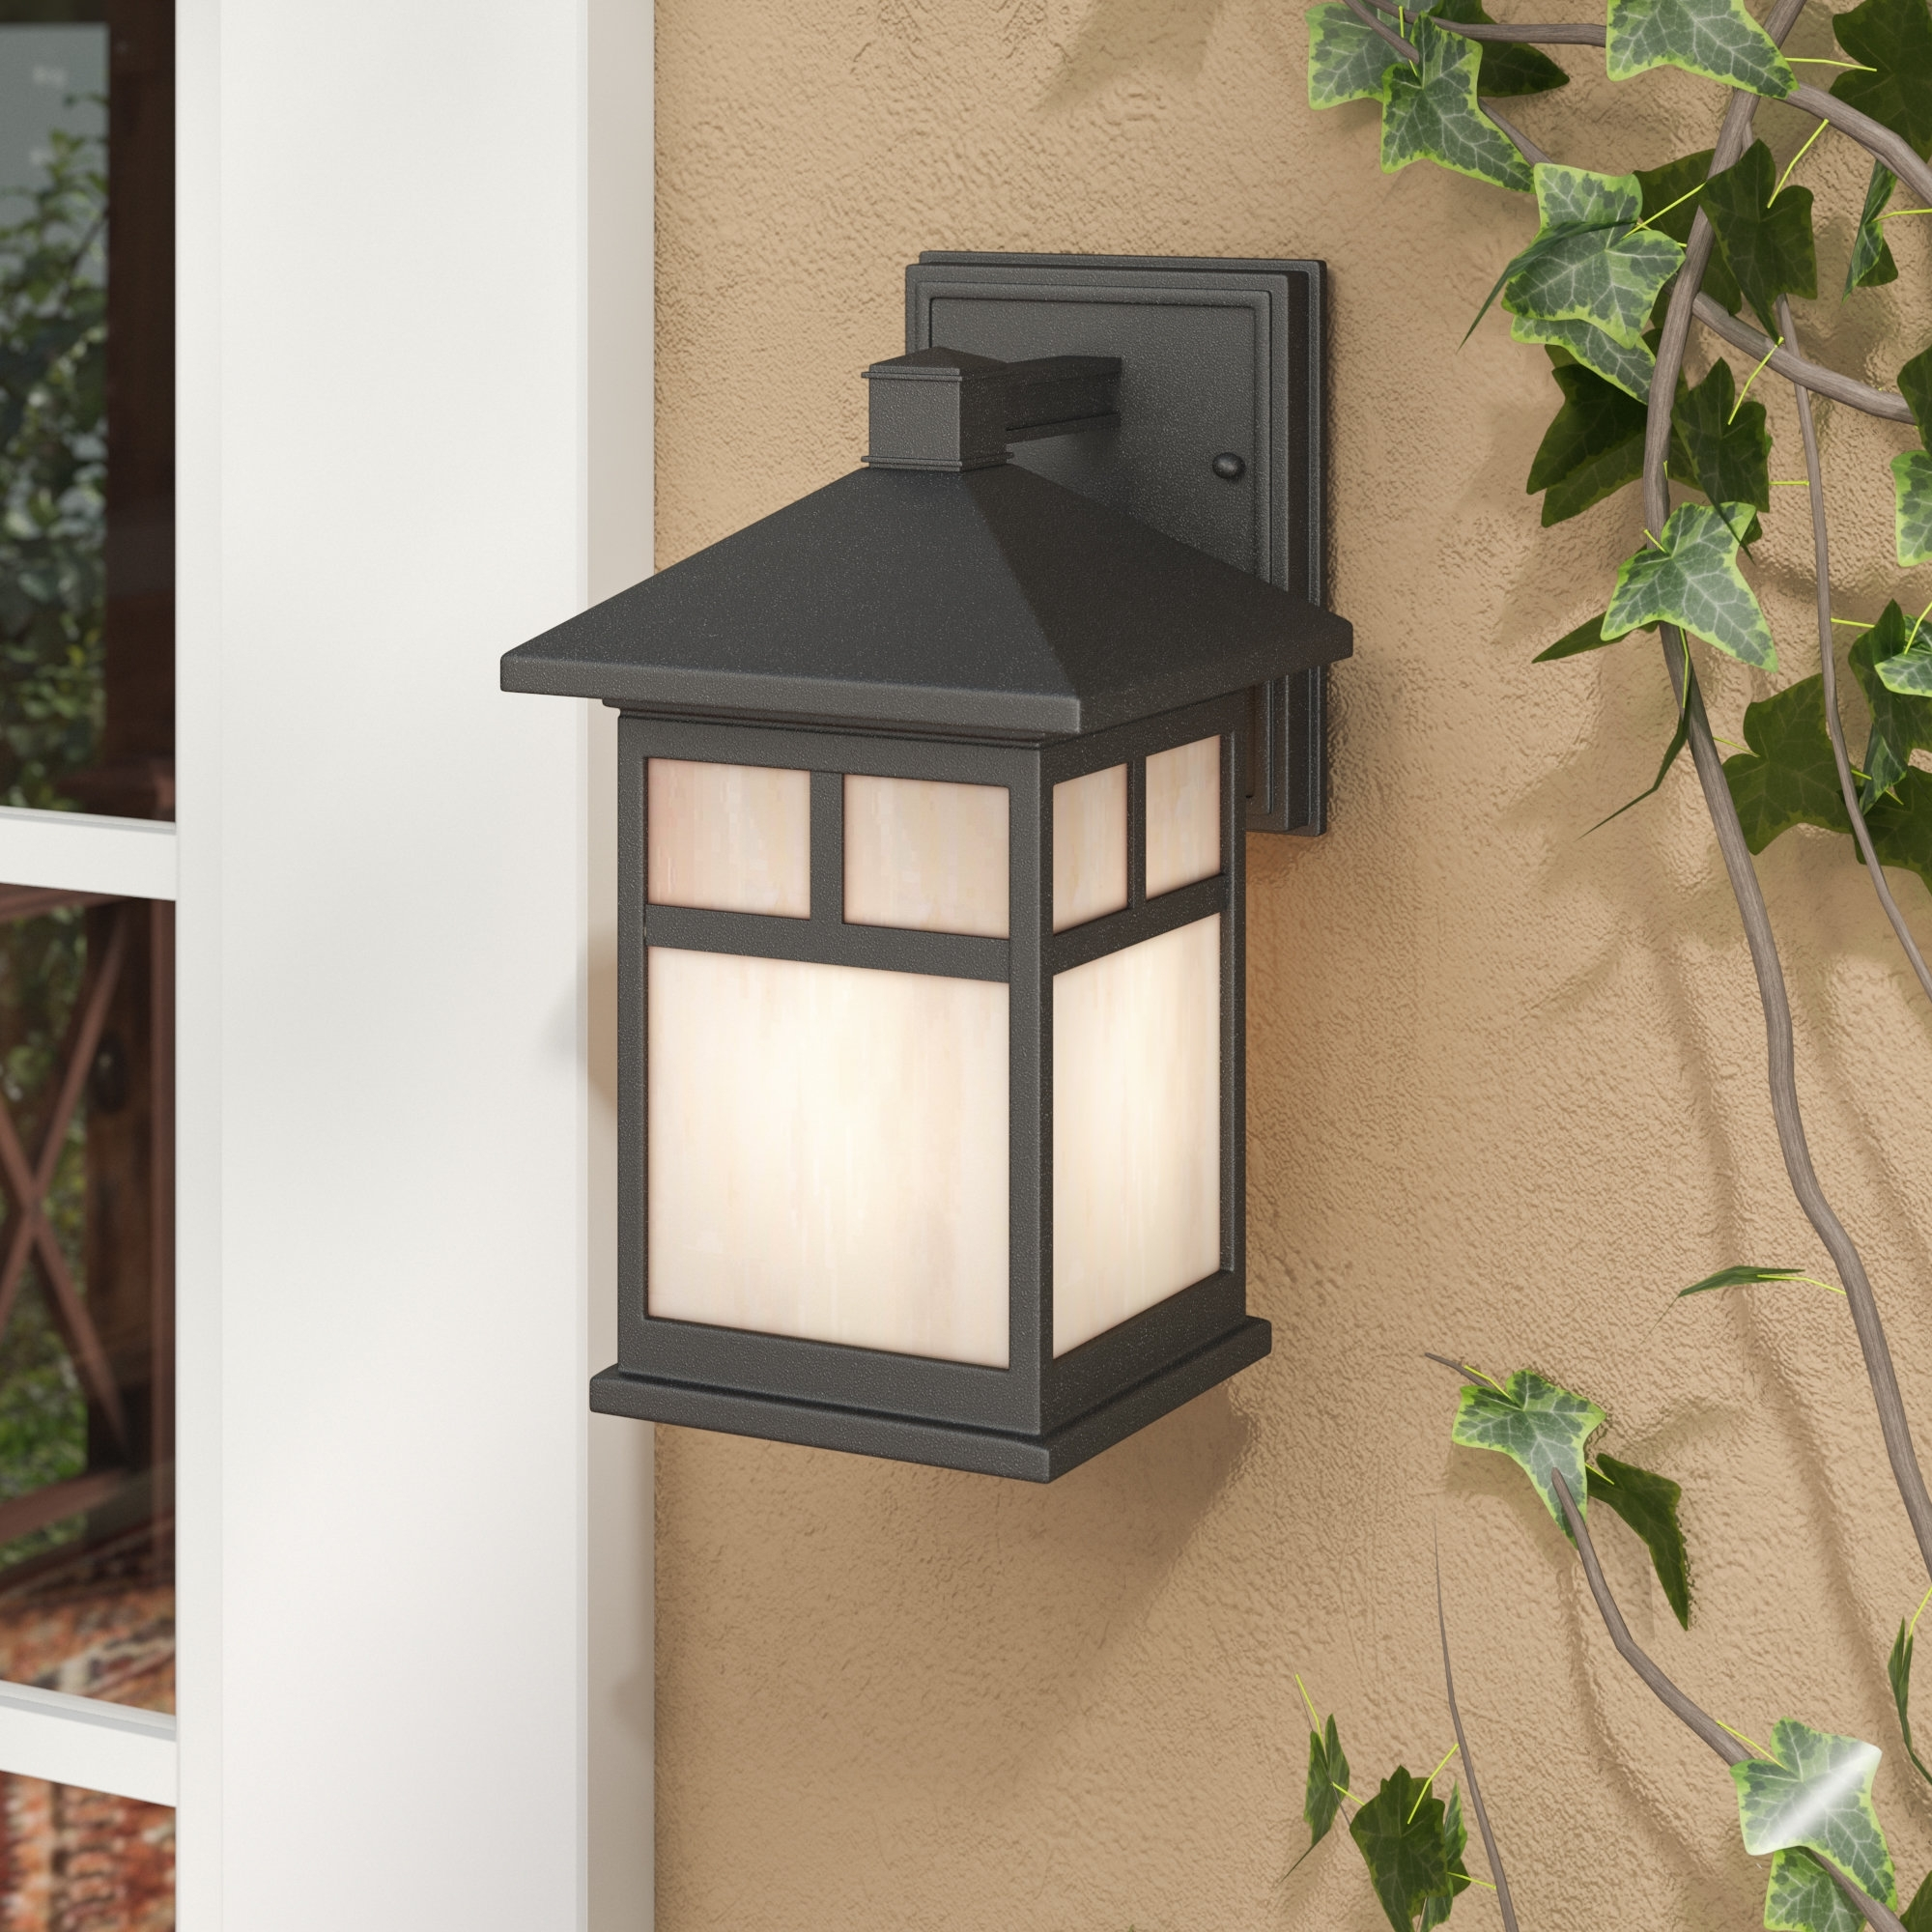 2018 Loon Peak Burtundy 1 Light Outdoor Wall Lantern & Reviews (Gallery 14 of 20)